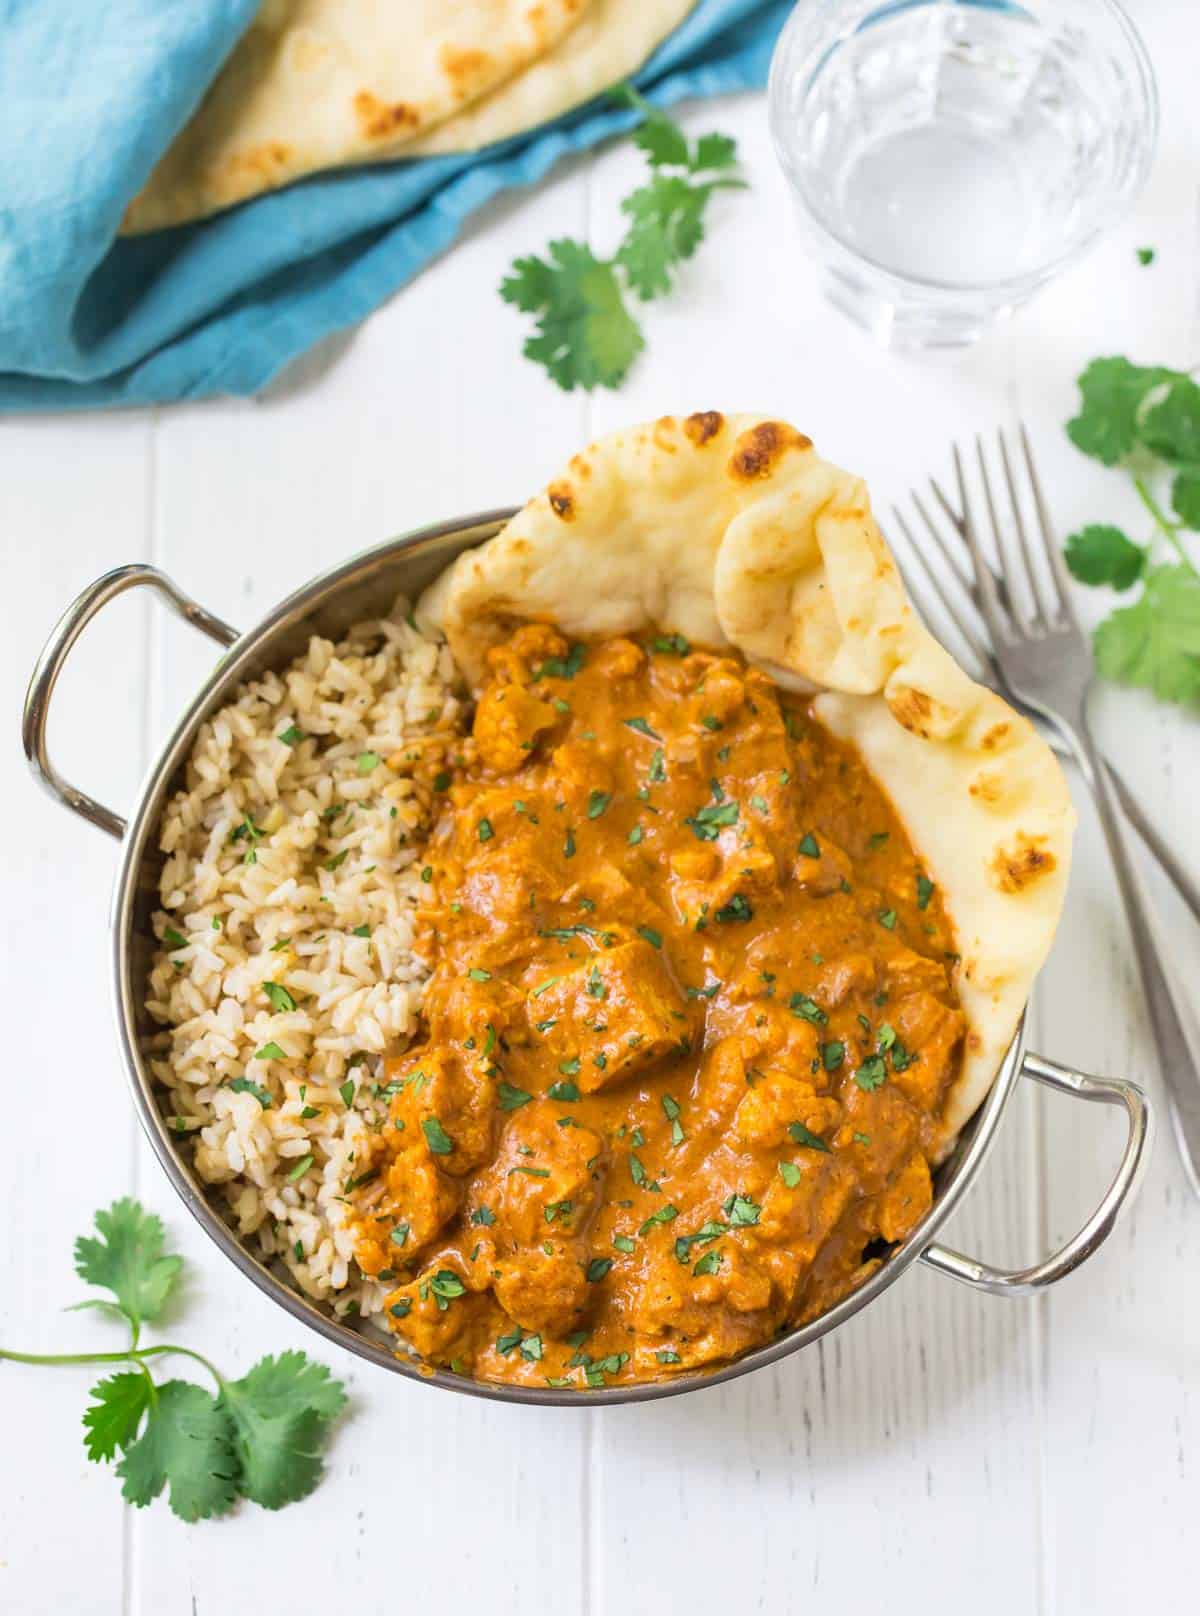 Instant Pot Butter Chicken. An easy, healthy recipe for the famous Indian butter chicken that anyone can make! Recipe uses easy to find ingredients like coconut milk and tomato, plus cauliflower to make it a true all-in-one meal.